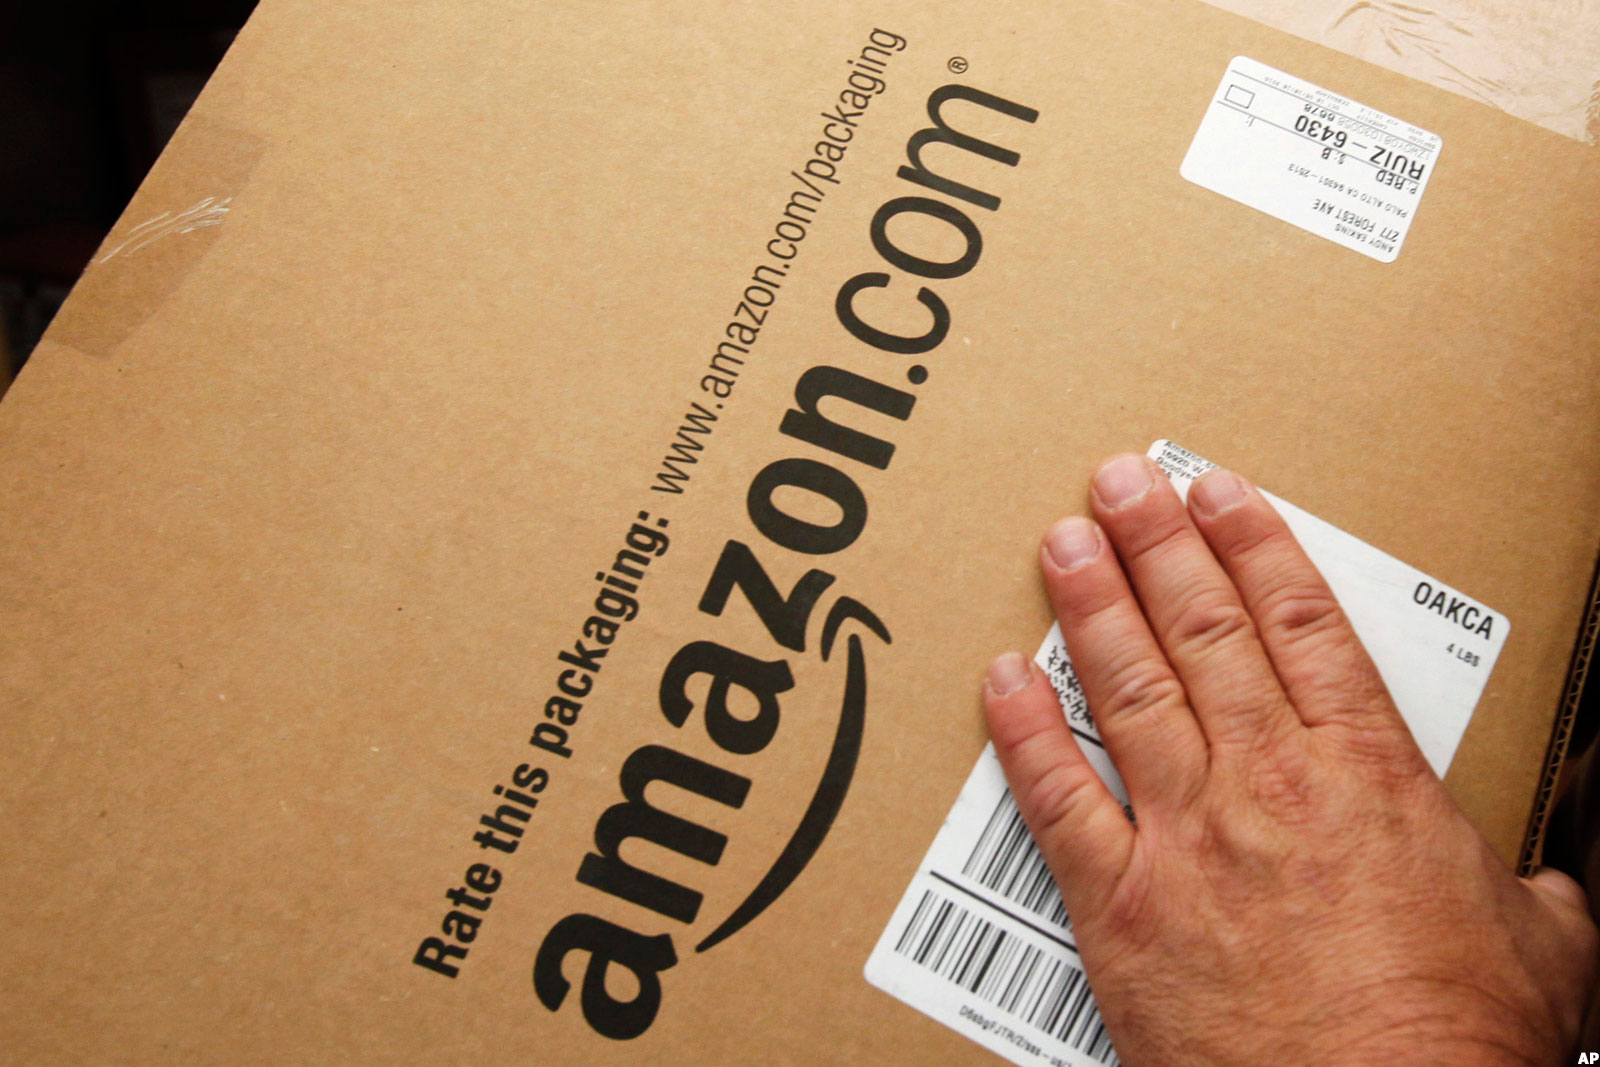 Heres How Amazon Could Offer Its Own Delivery Service And Crush Ups